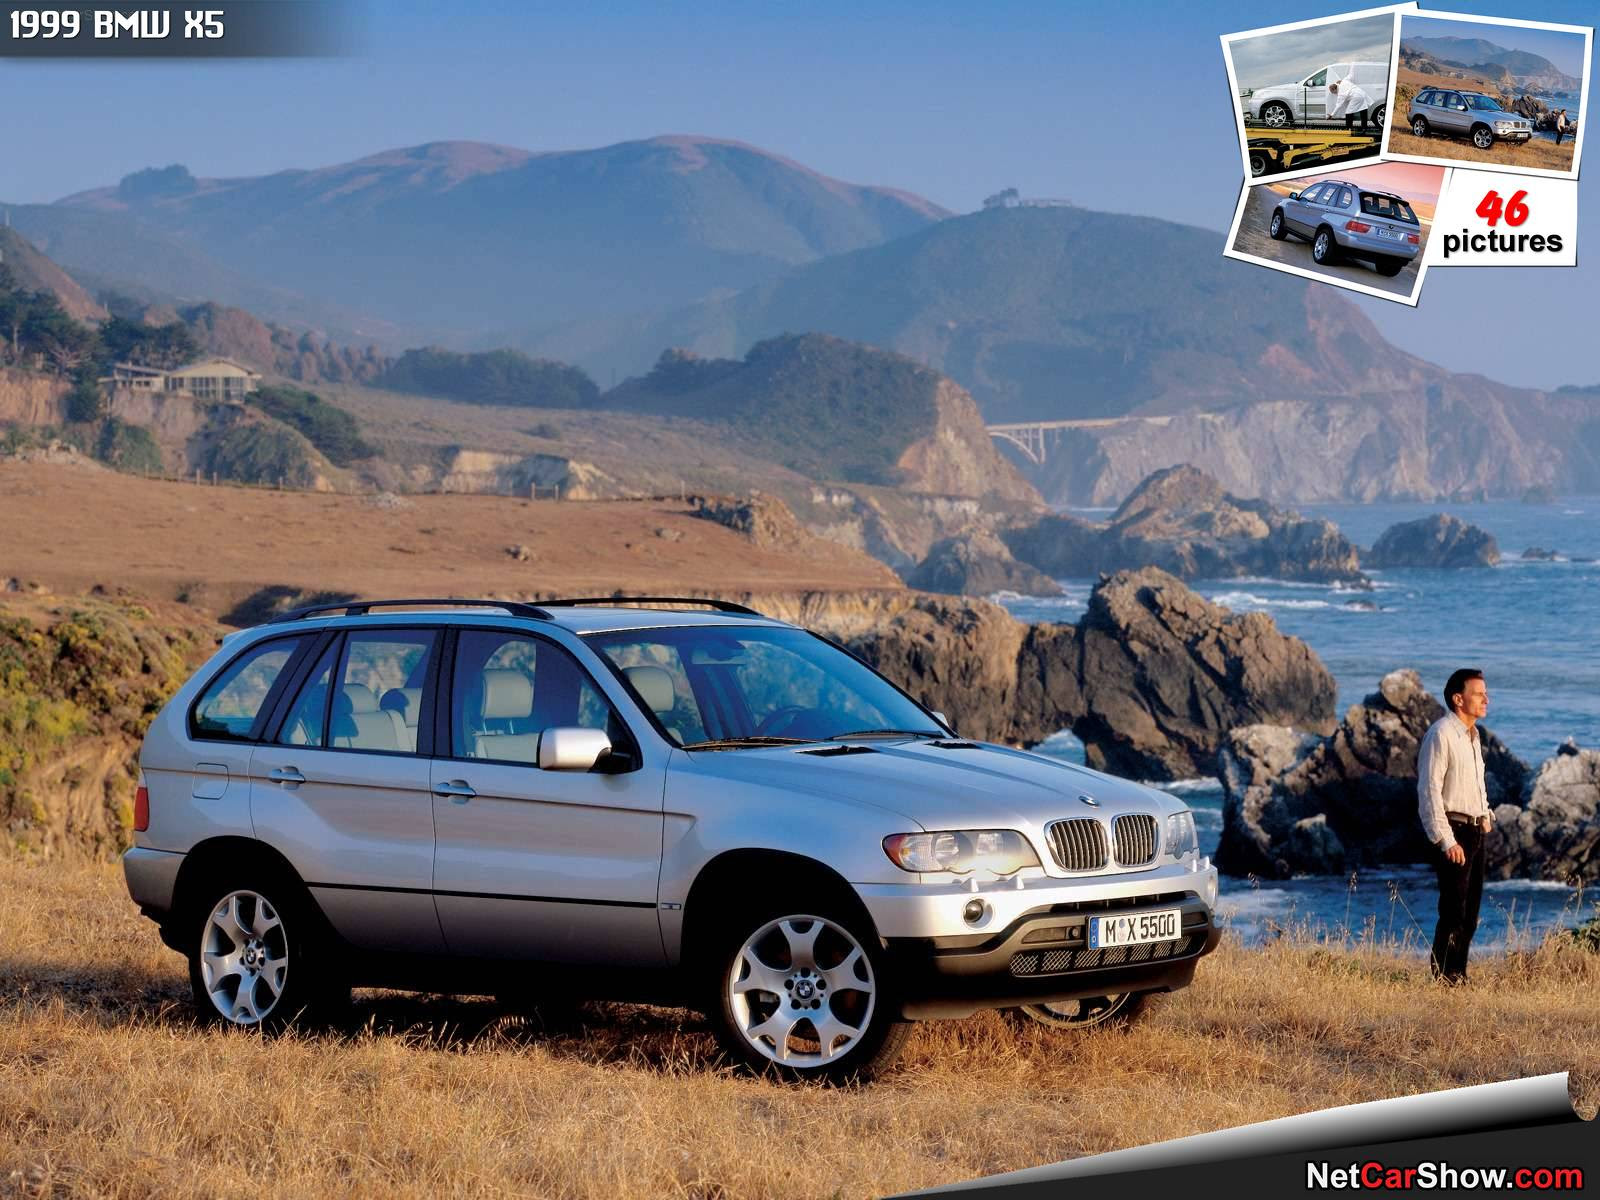 2004 Bmw X3 New Colors | ClassicCarsZone.us